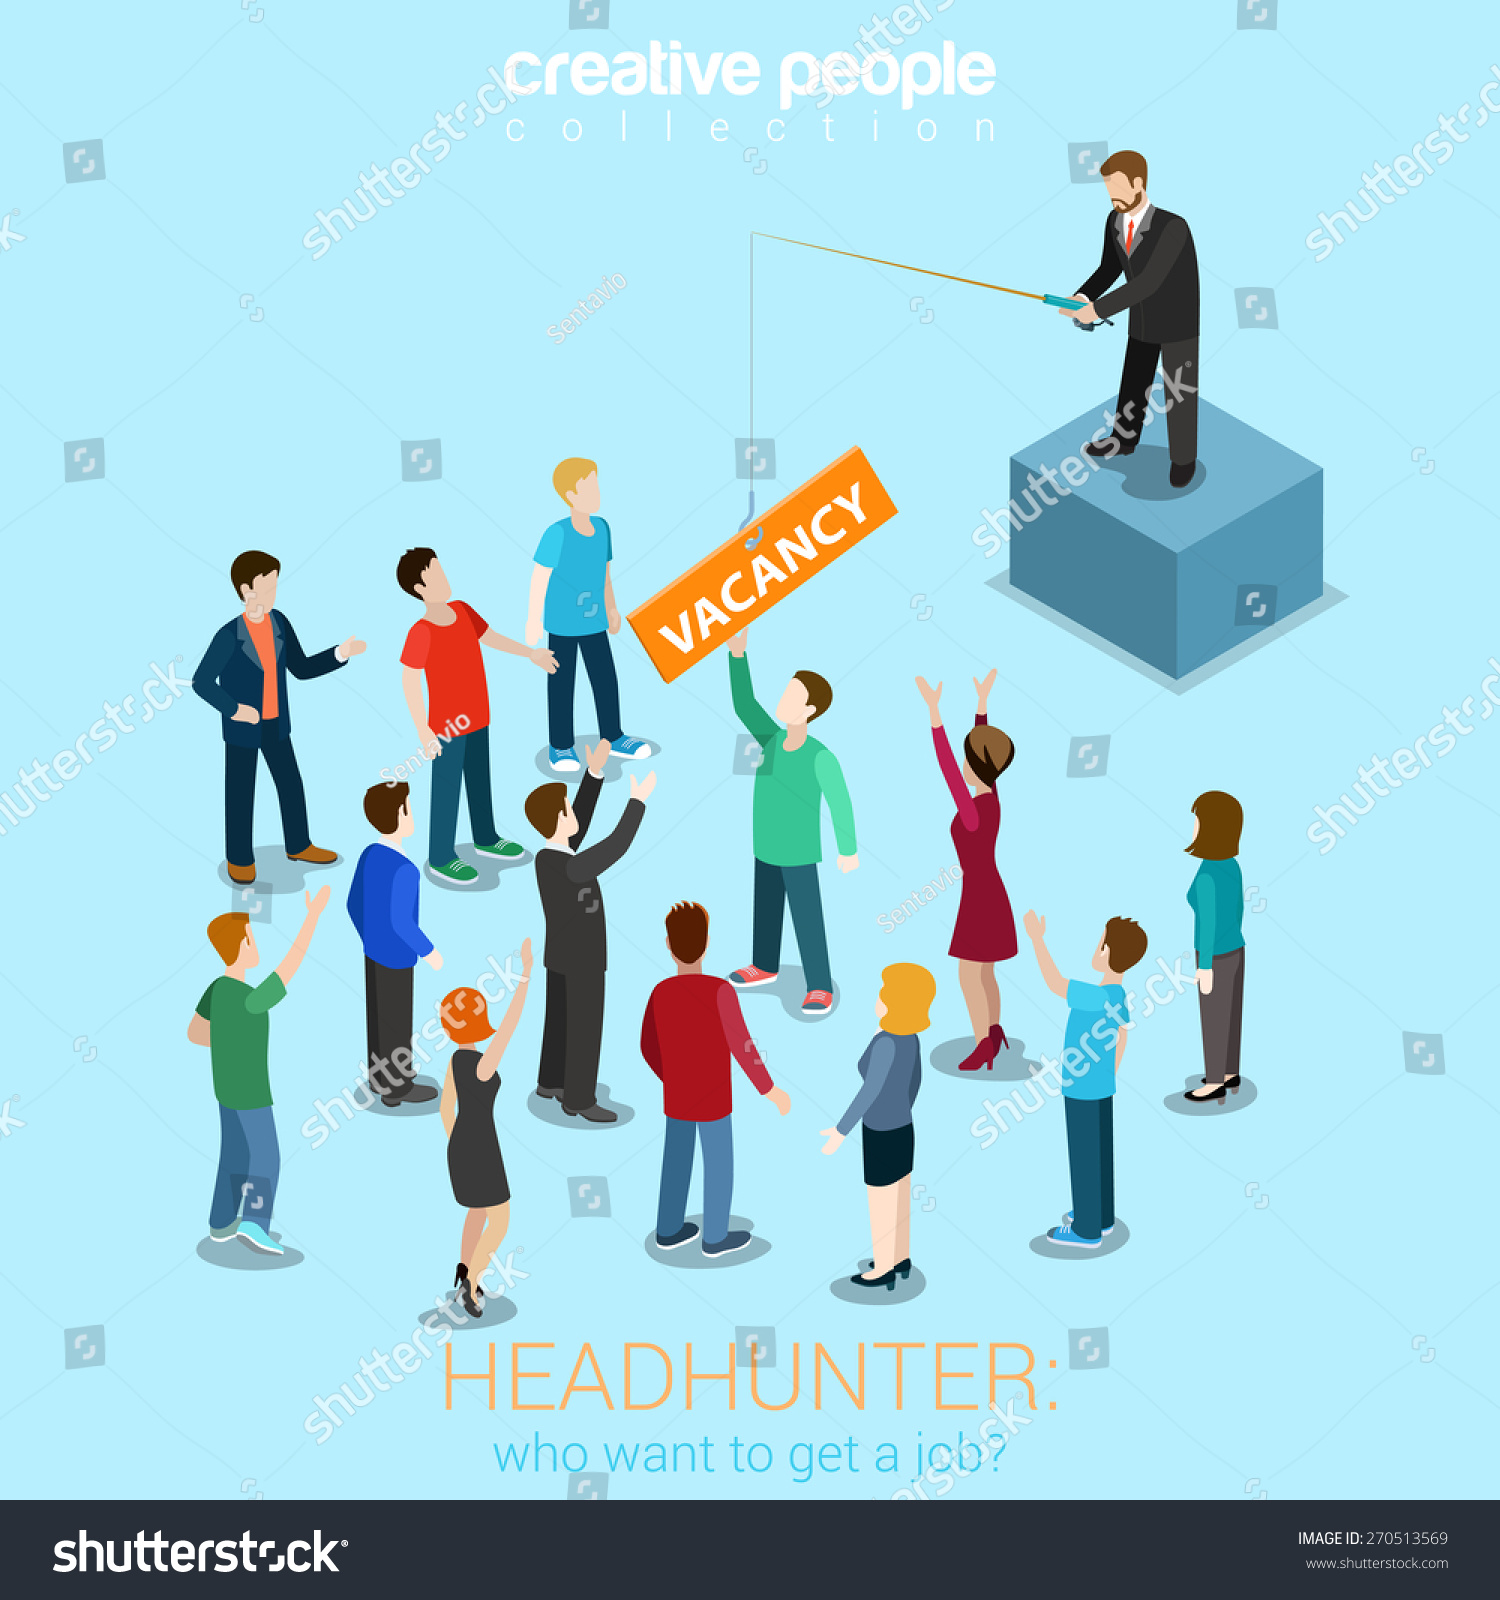 headhunter hr job offer vacancy flat stock vector  headhunter hr job offer vacancy flat 3d web isometric modern trendy stylish concept vector illustration